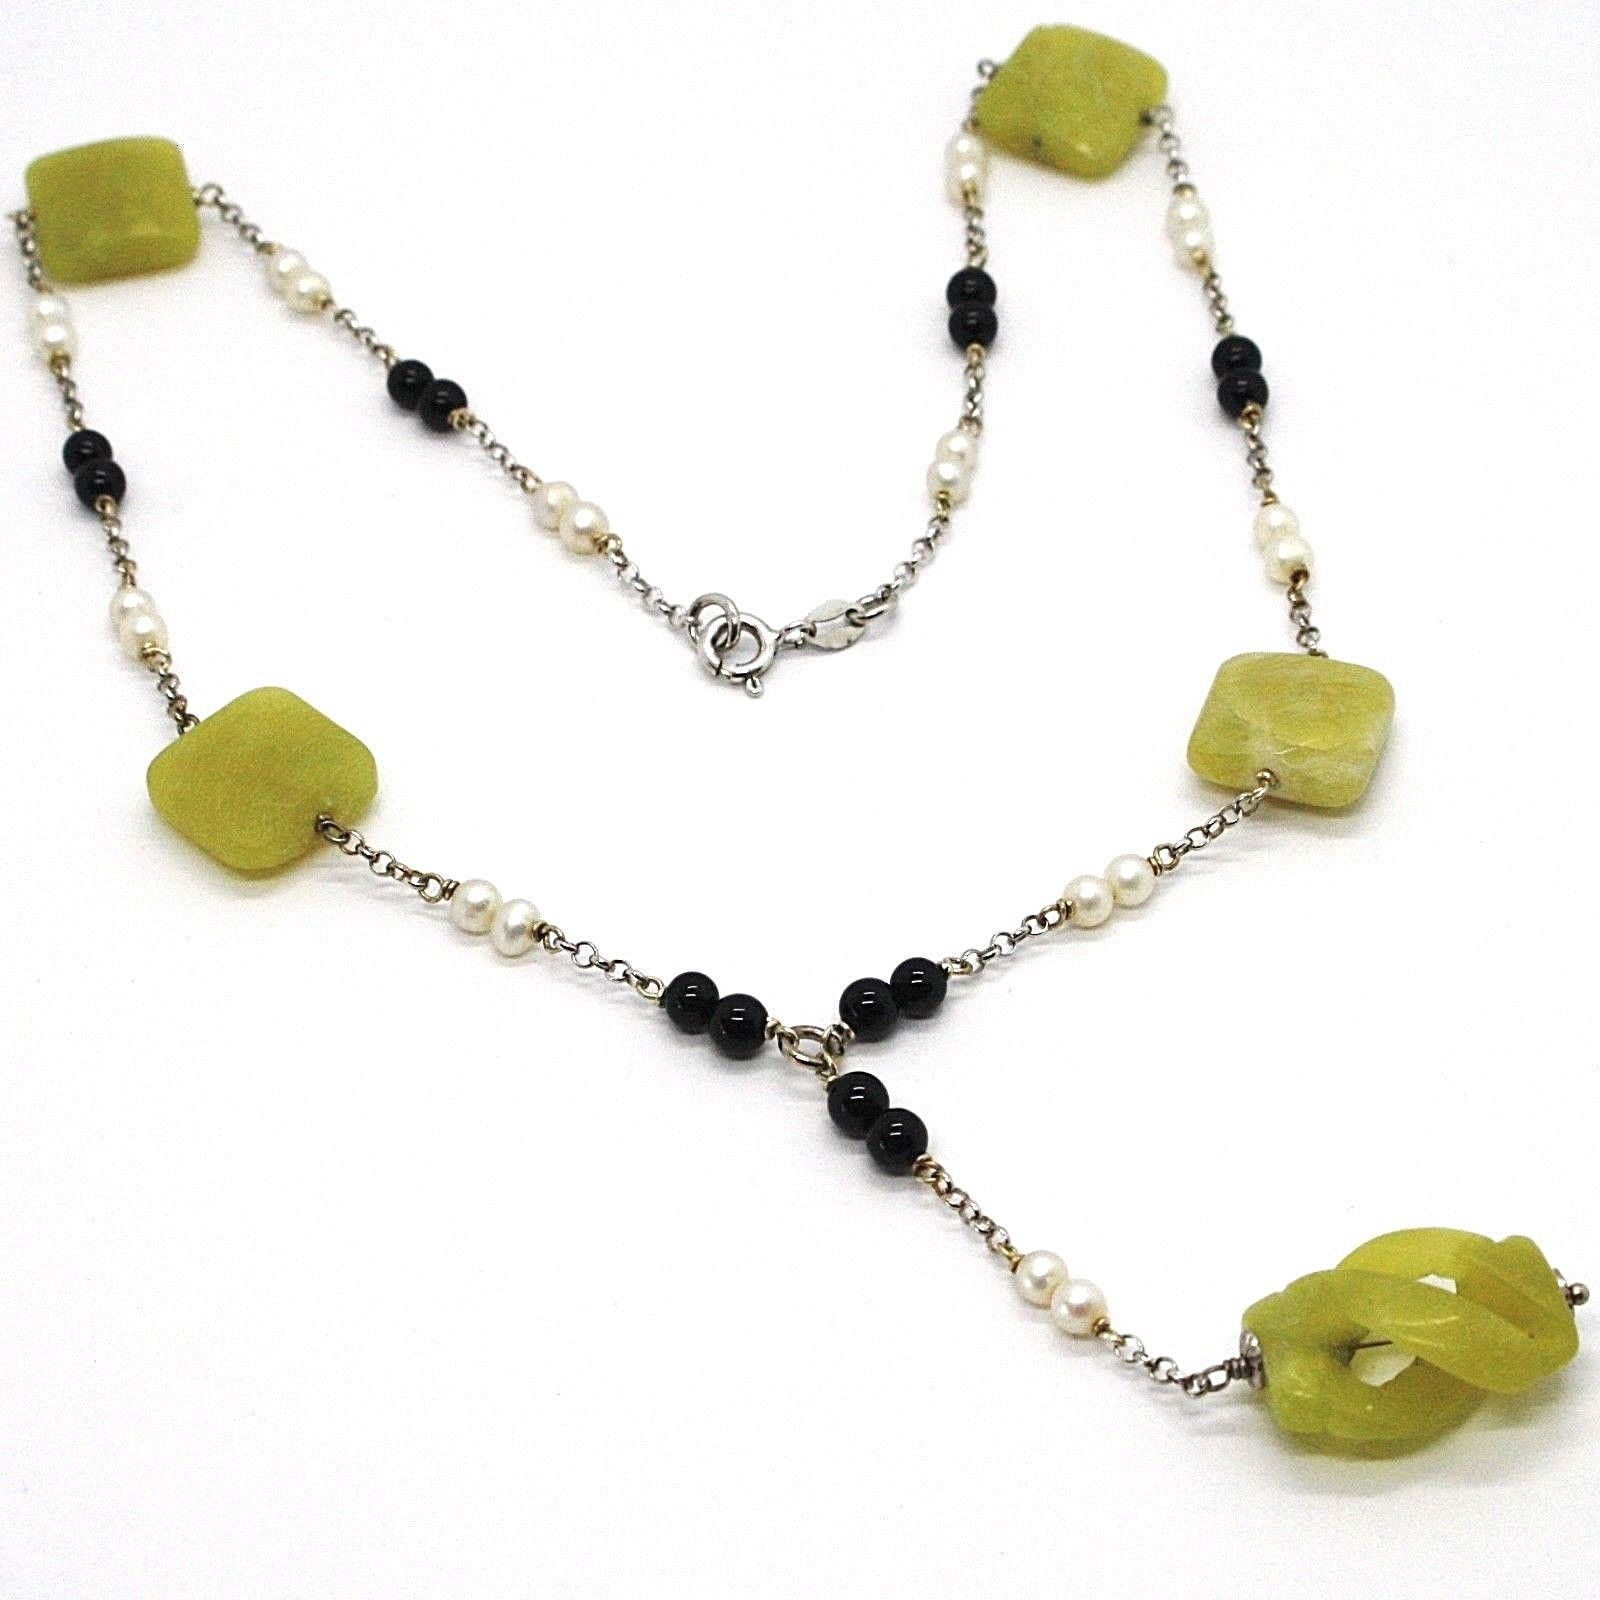 Silver necklace 925, Onyx Black, Jasper Green, Pearls, Pendant